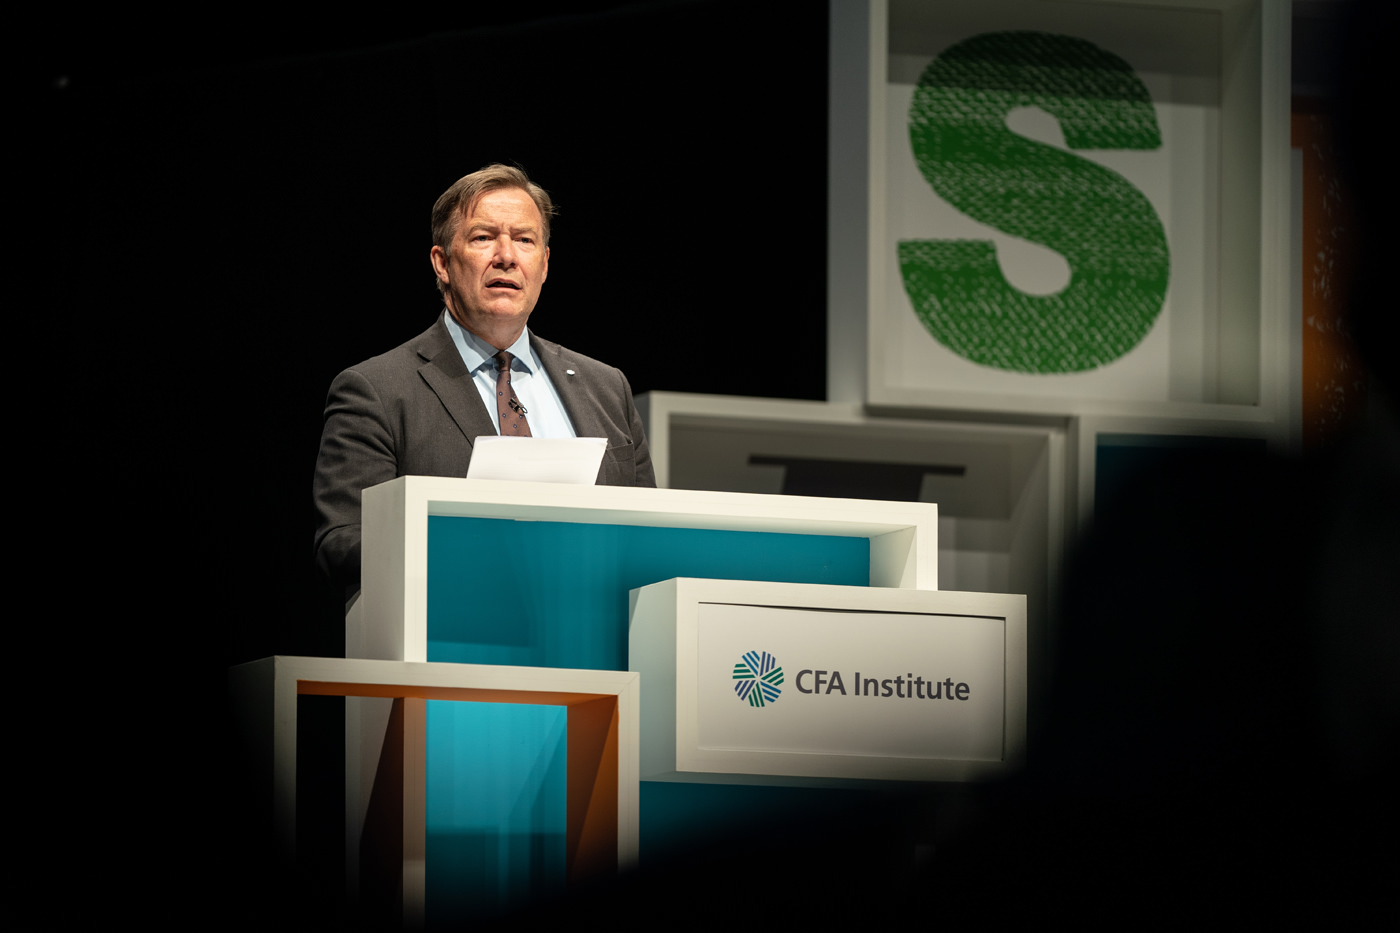 Gary Baker opens the CFA Institute Annual Conference 2019 at ExCel London